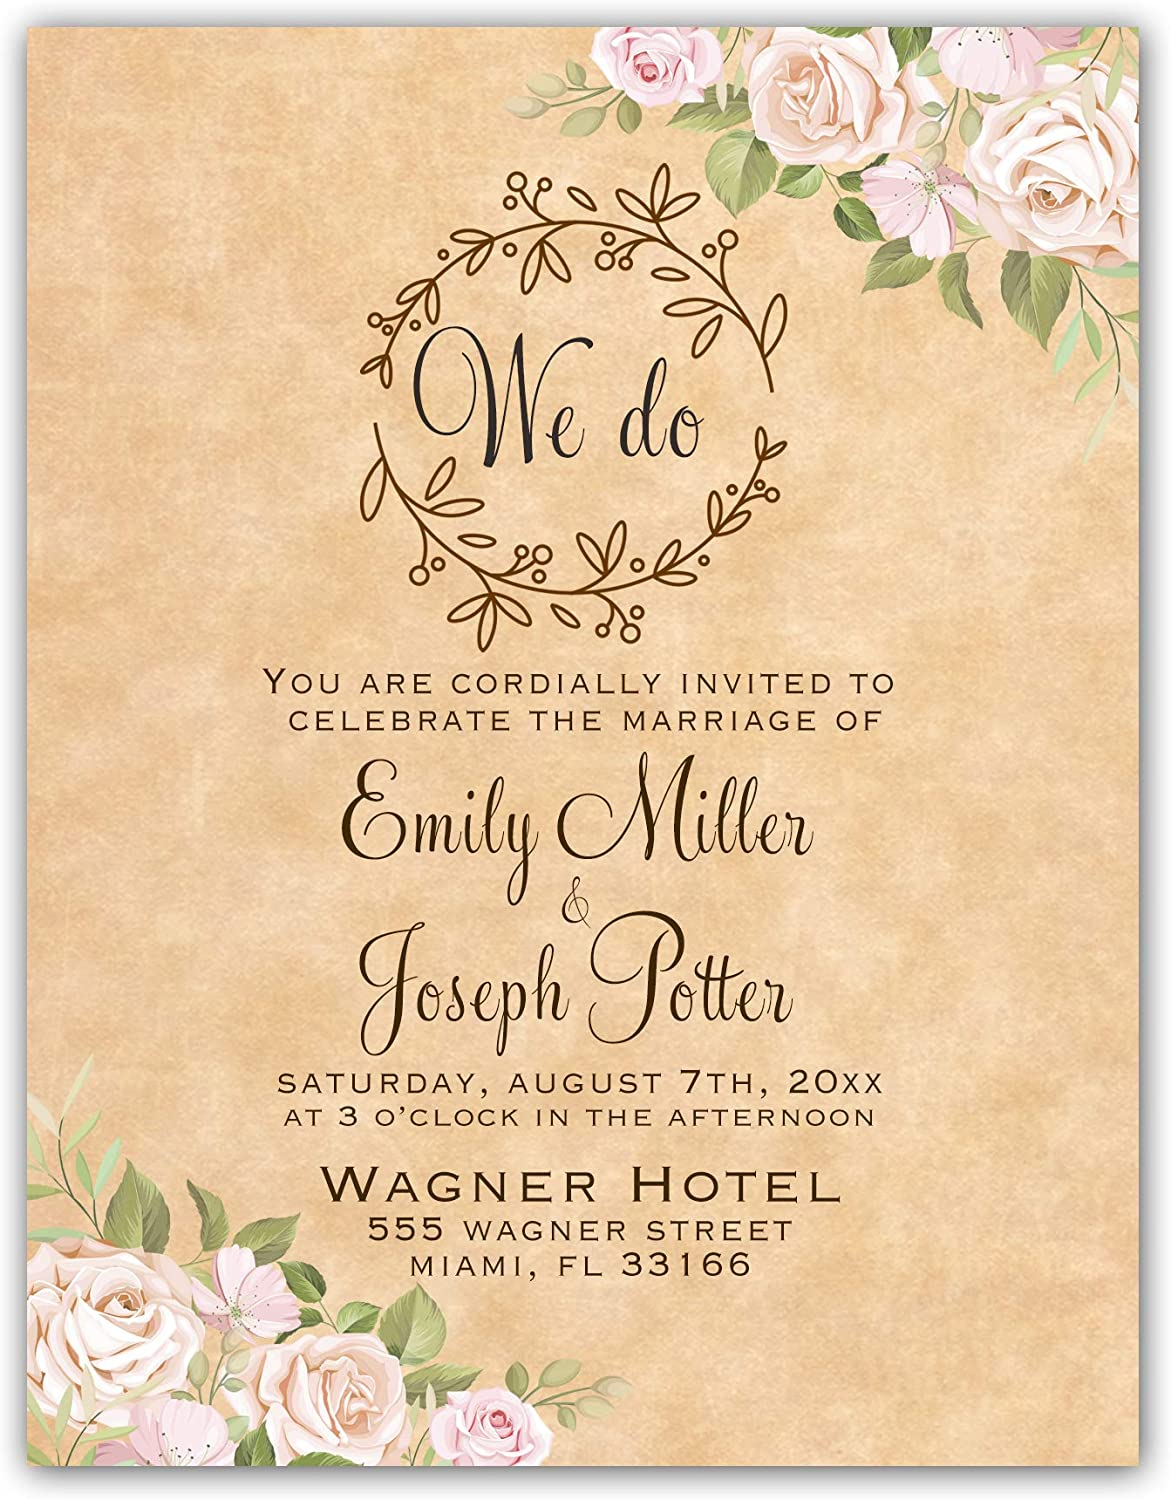 Amazon.com: 100 Wedding Invitations Floral Pink Roses Rustic Personalized +  Envelopes: Kitchen & Dining